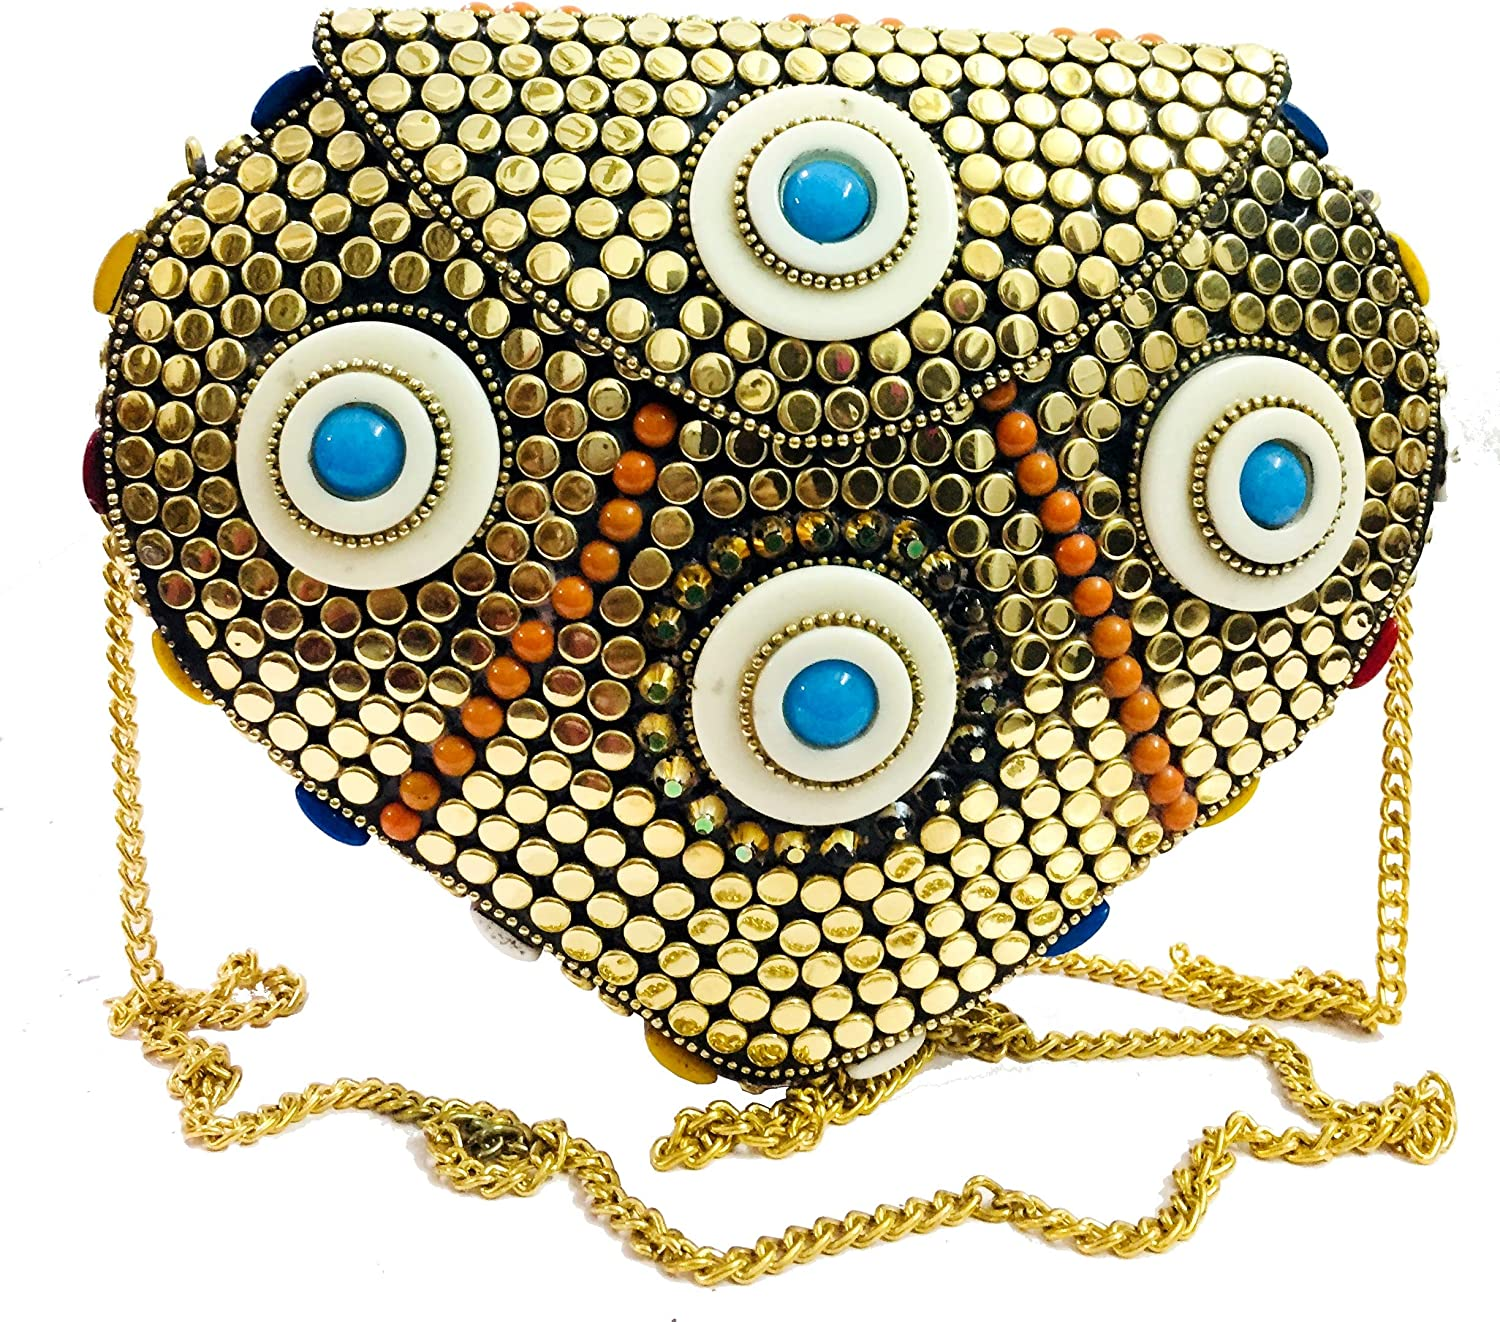 golden Brass Indian Ethnic purse Girls Antique Bridal Bag cross body bag party clutch Metal clutches